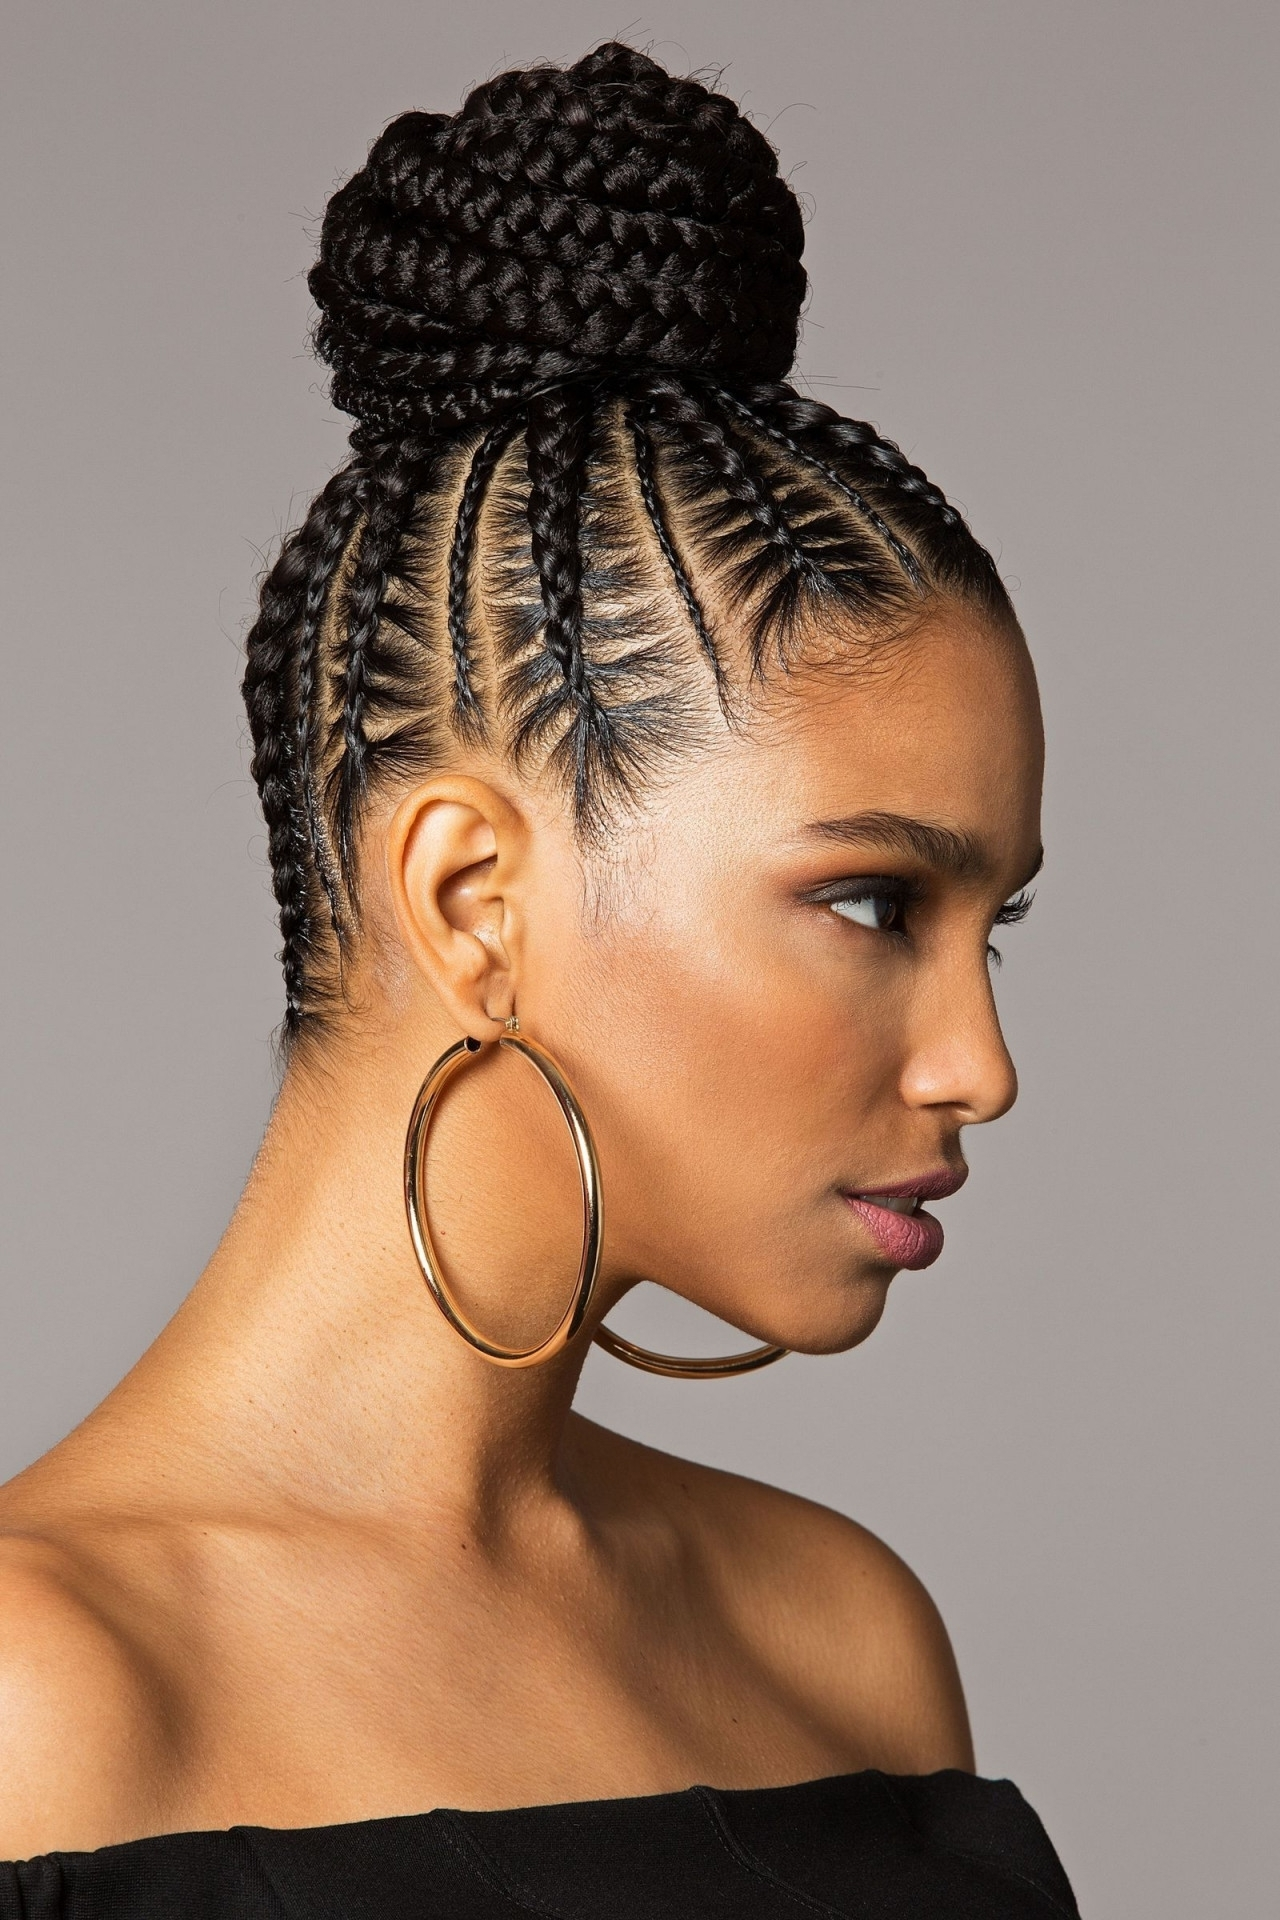 Updo Cornrow Hairstyles For Black Women 2018 – Twelveminutemuse Throughout Widely Used Cornrows Hairstyles For Ladies (View 15 of 15)